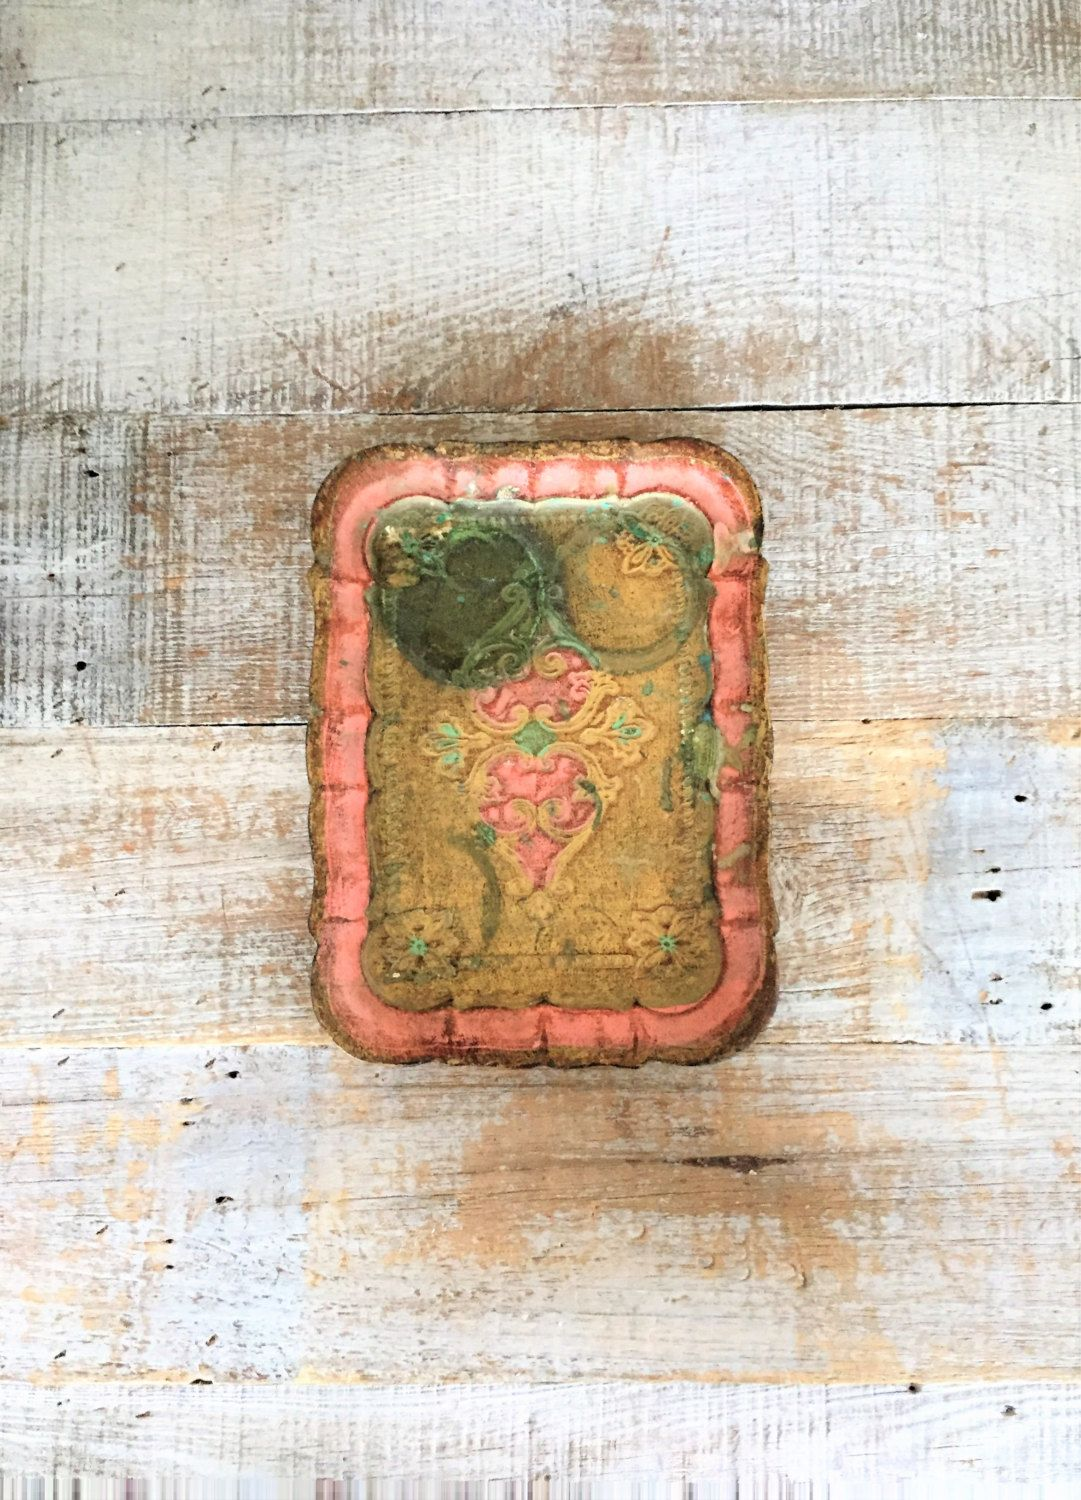 Tray Small Wood Tray French Country Serving Tray Vanity Tray Jewelry Tray Shabby Gold And Pink Tray Centerpiece Base Pink Tray Wooden Tray Wood Tray